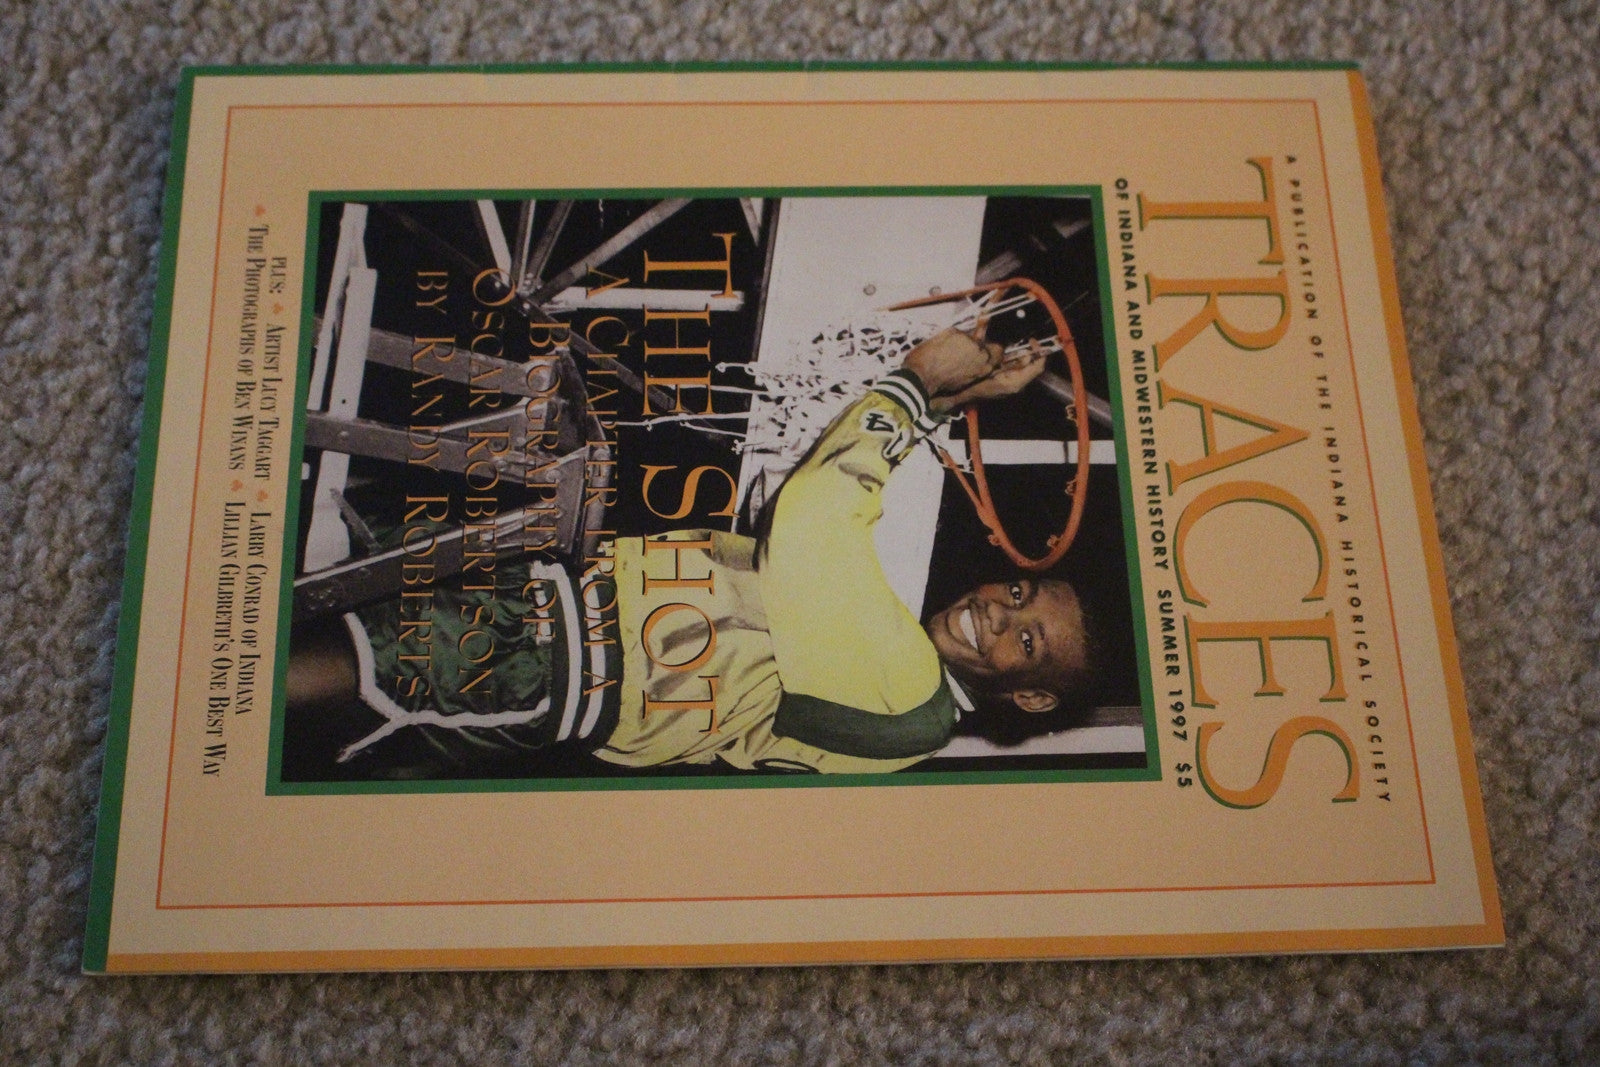 1997 Traces Indiana History Magazine, Oscar Robertson on Cover - Vintage Indy Sports